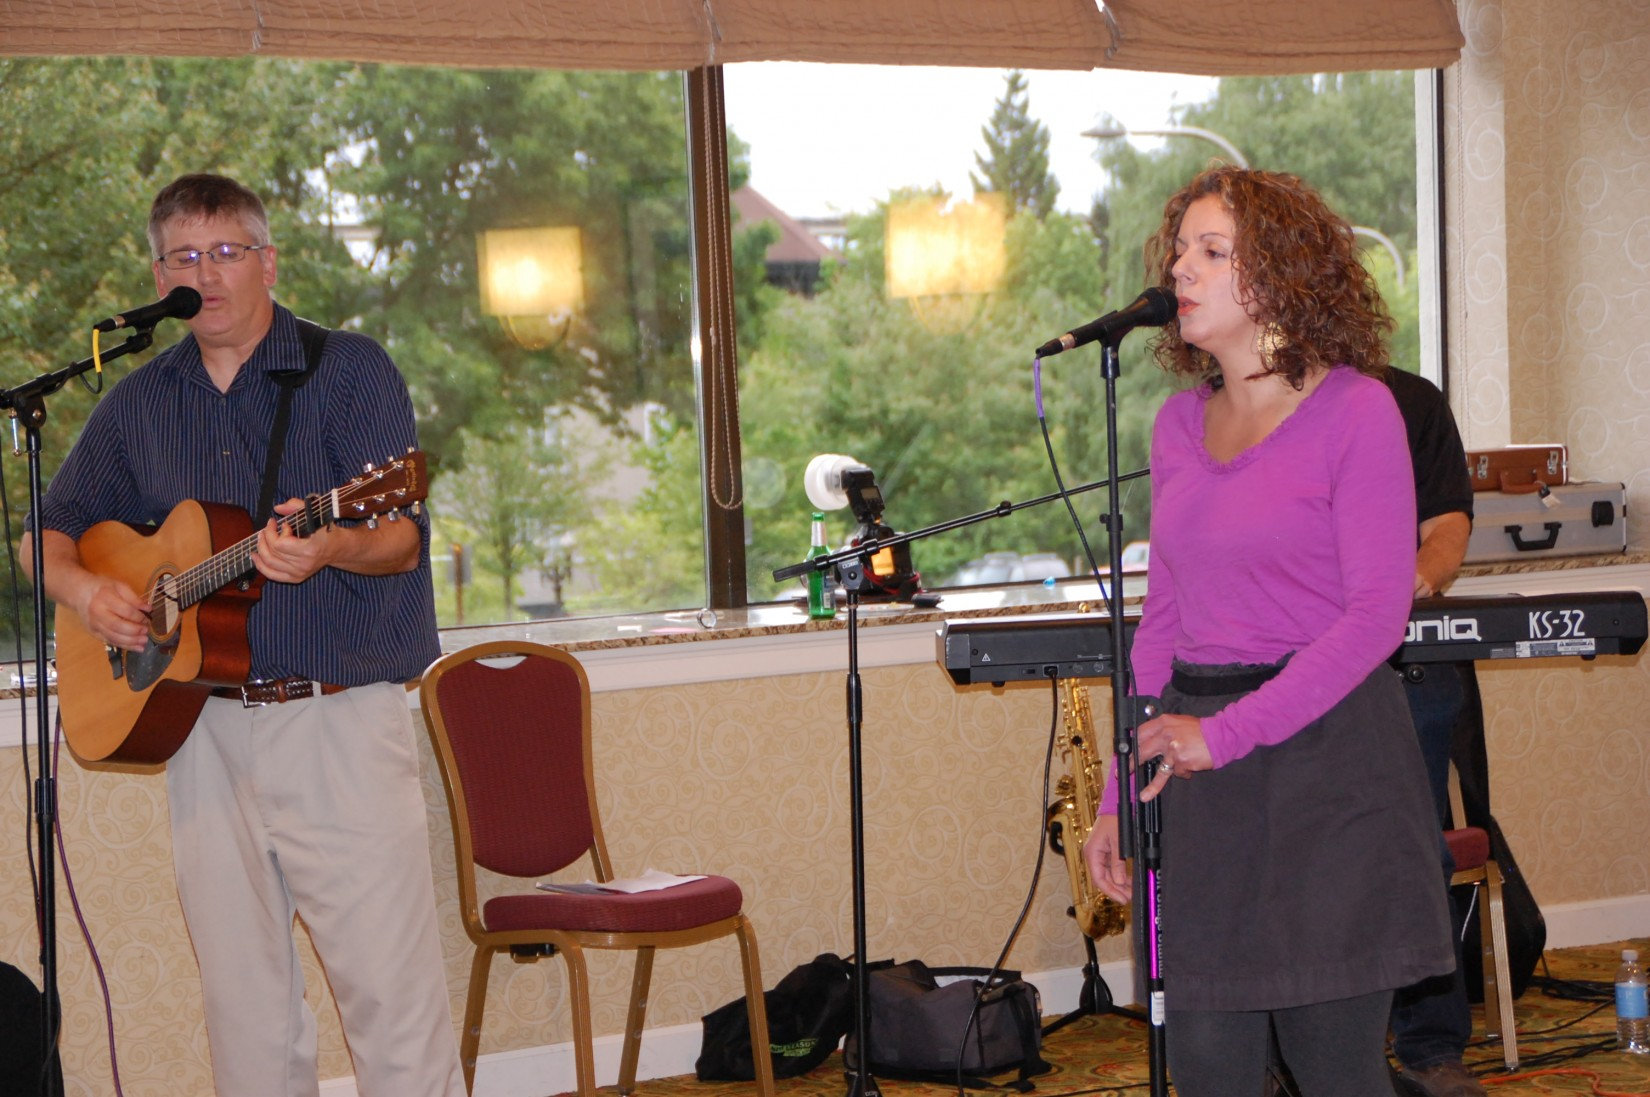 The local band, SloeGinFizz, provided musical accompaniment at the Crime Victims' Rights Reception